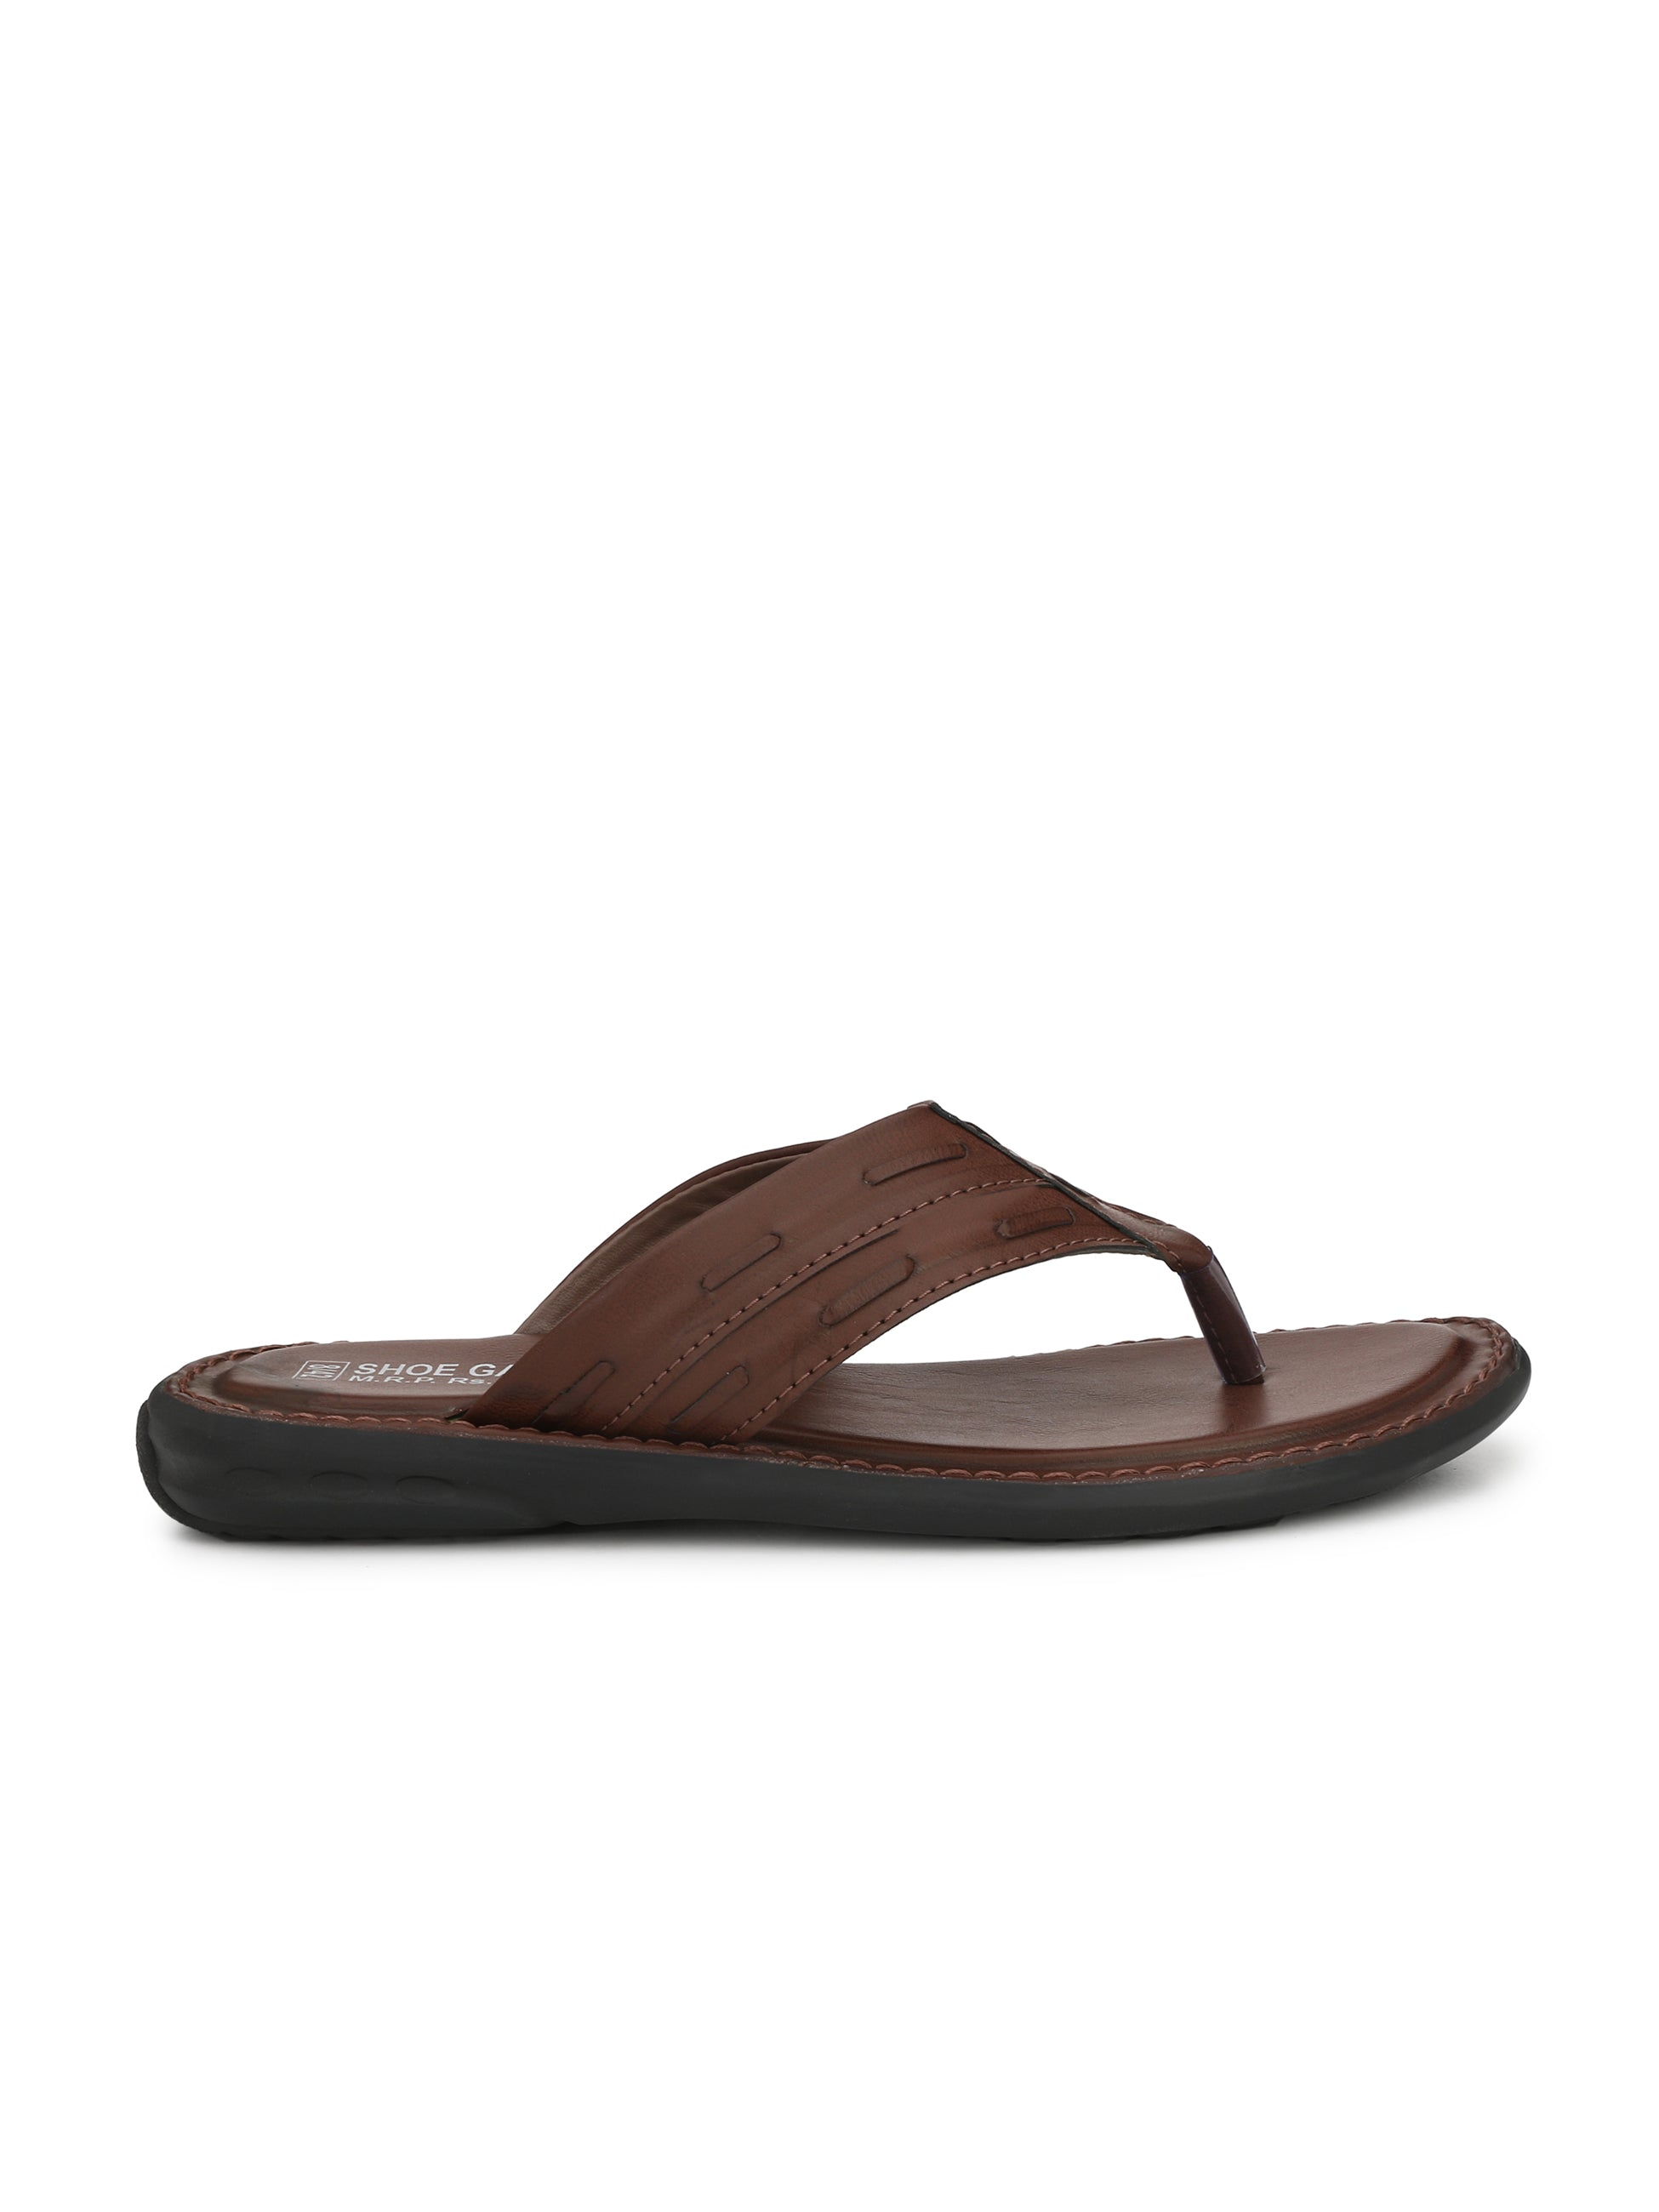 Classic Brown Thong Strap Slipper - shoegaro